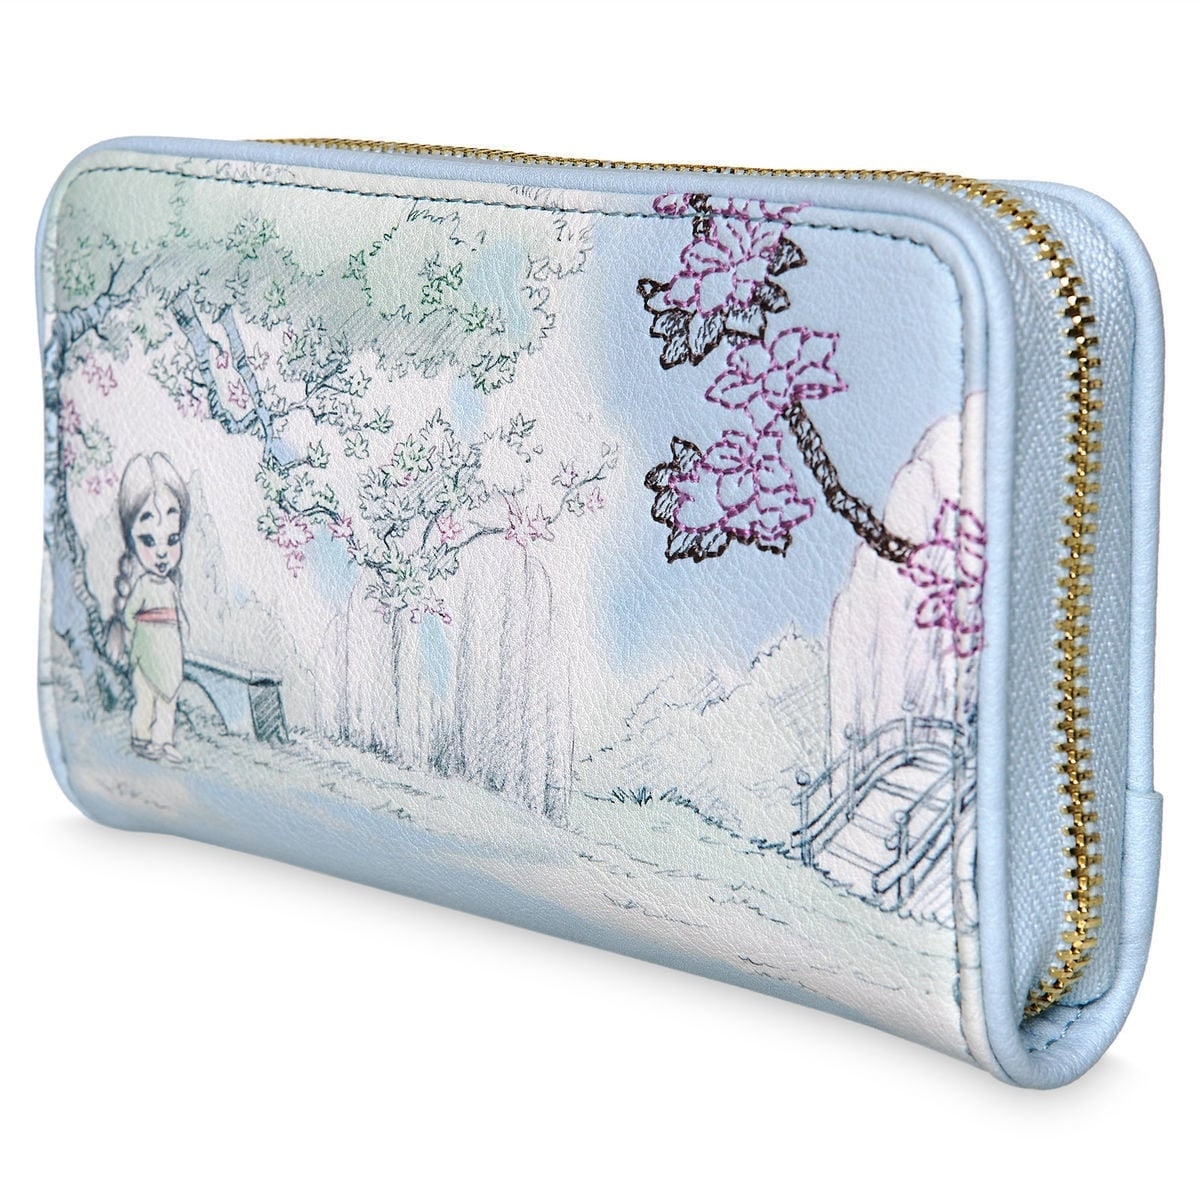 Mulan Disney Animators' Collection Wallet